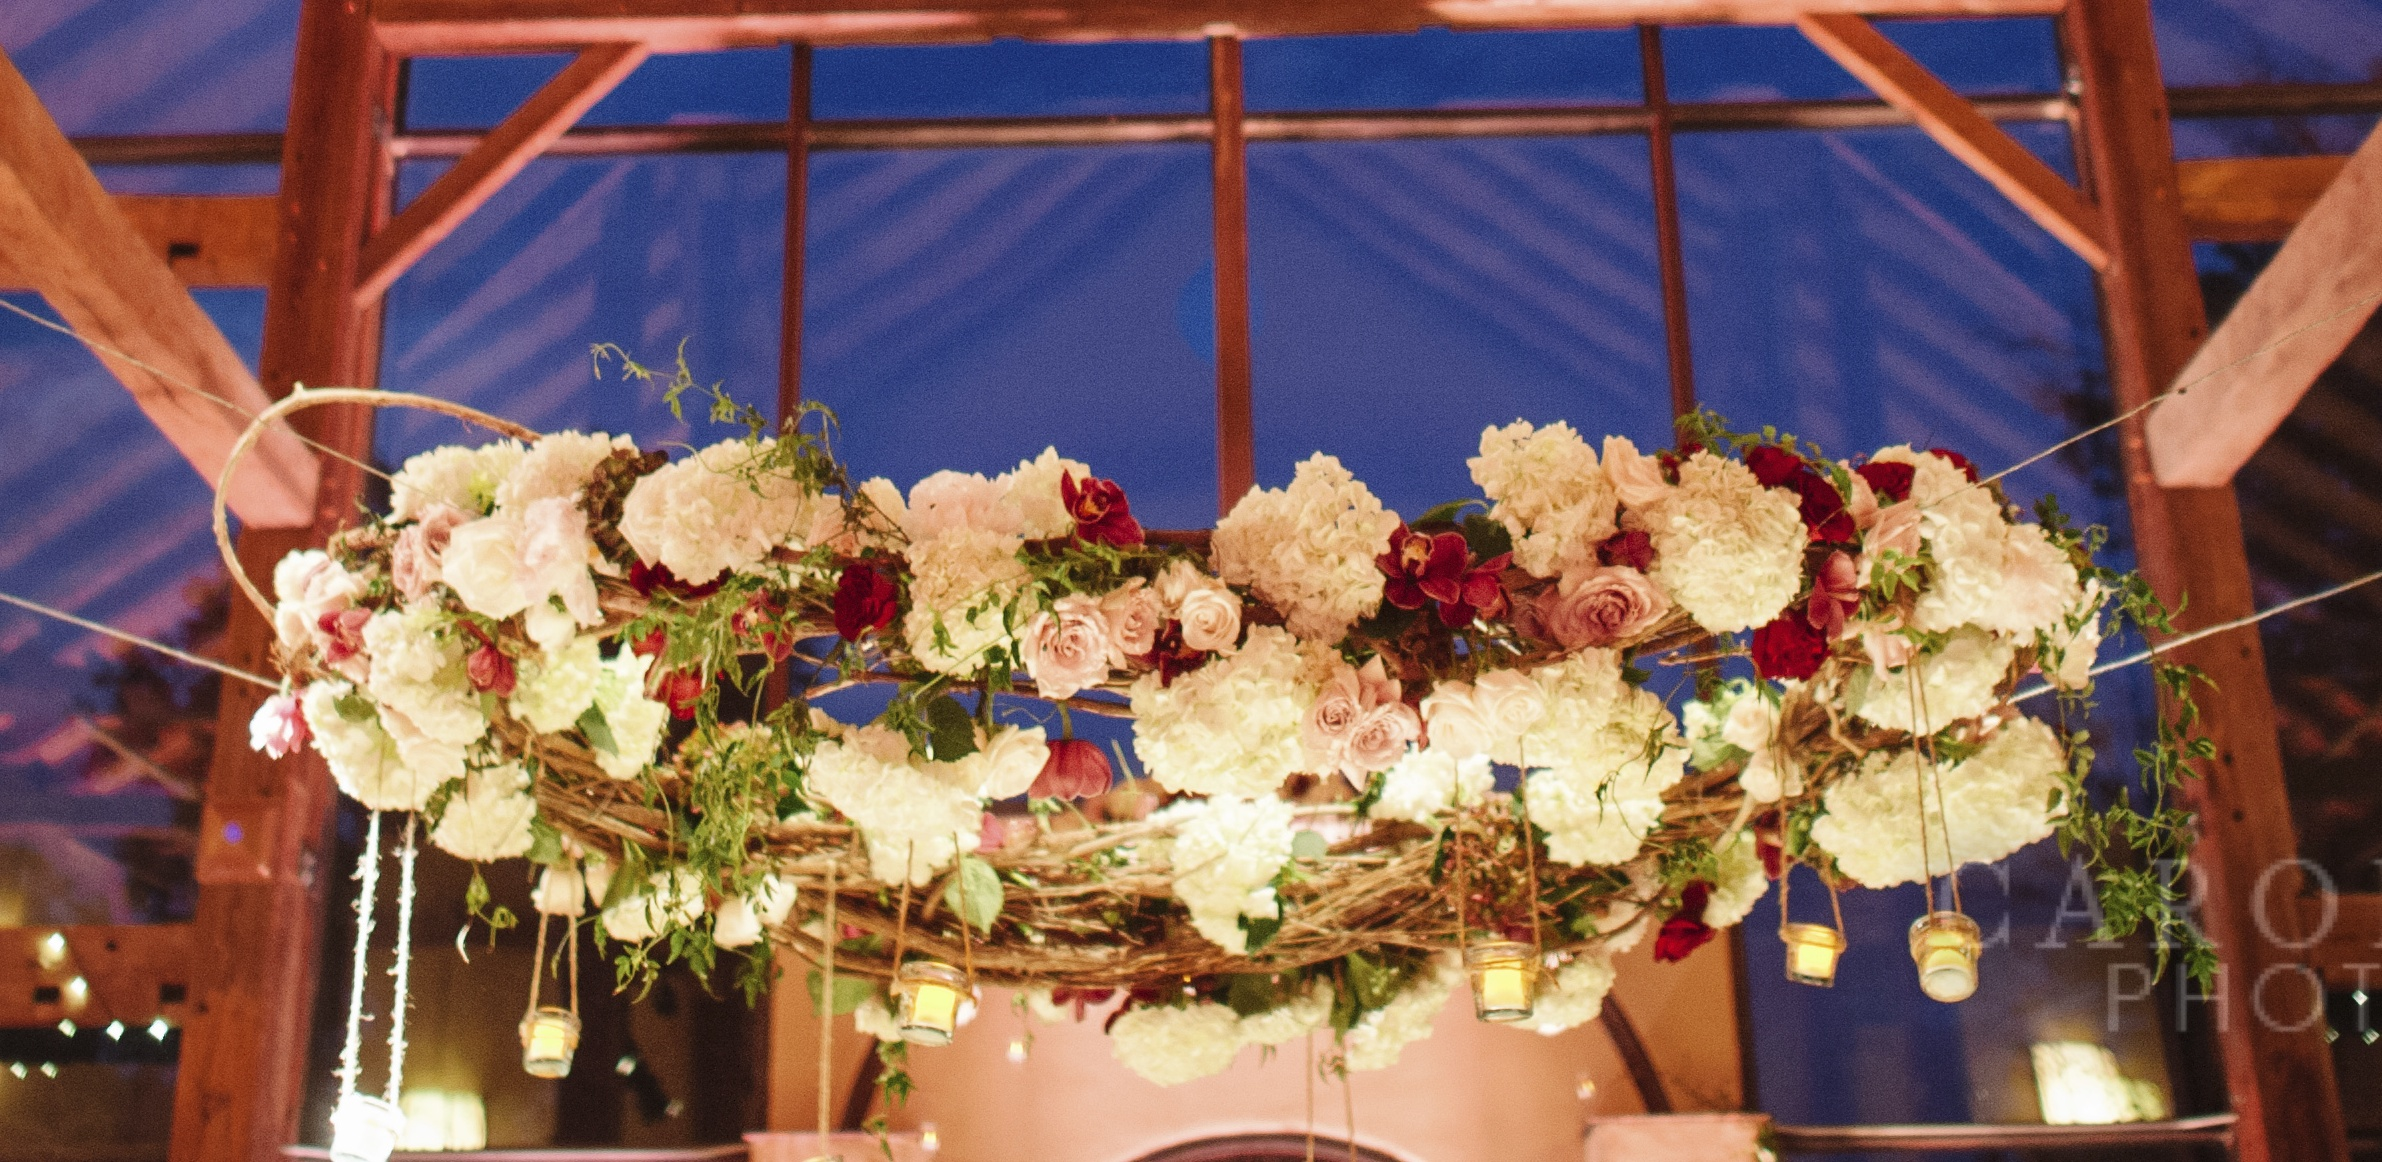 Lush wreath of florals suspended over dance floor.